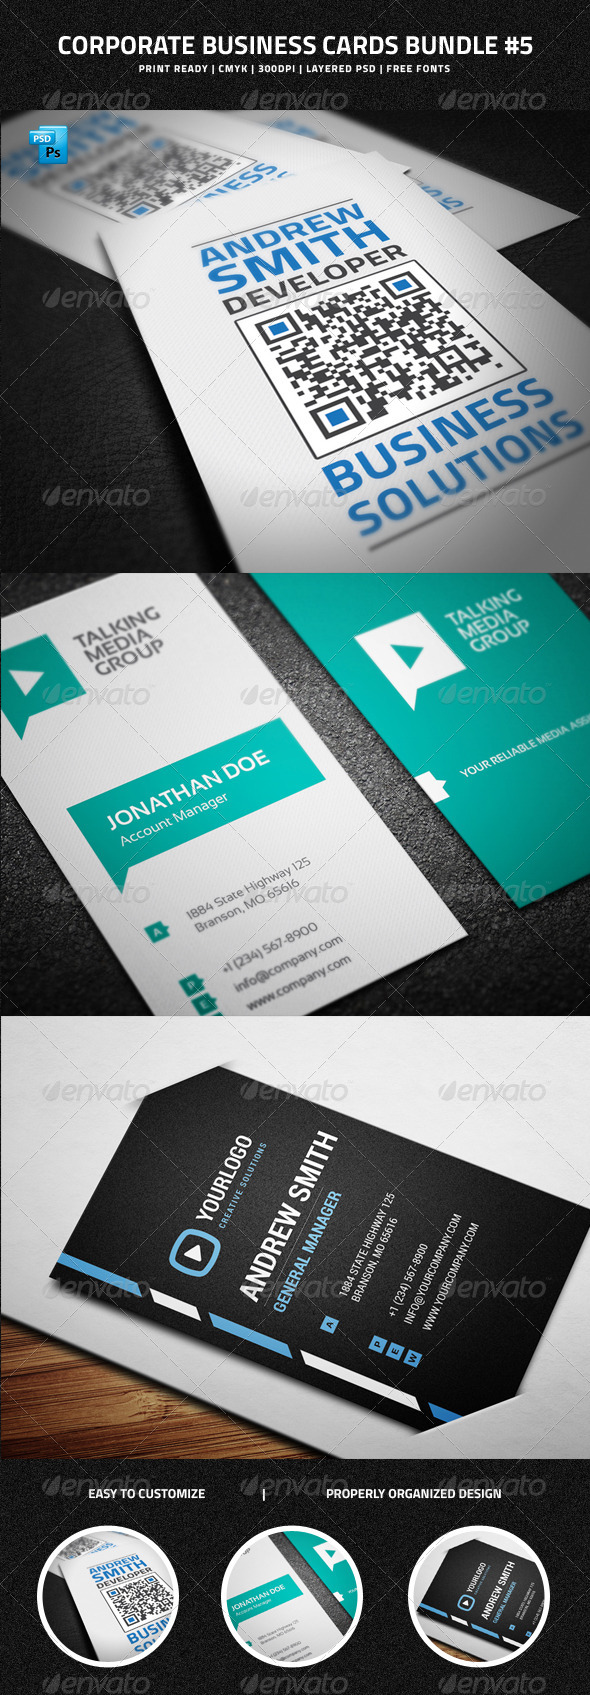 GraphicRiver Corporate Business Cards Bundle #5 7145349